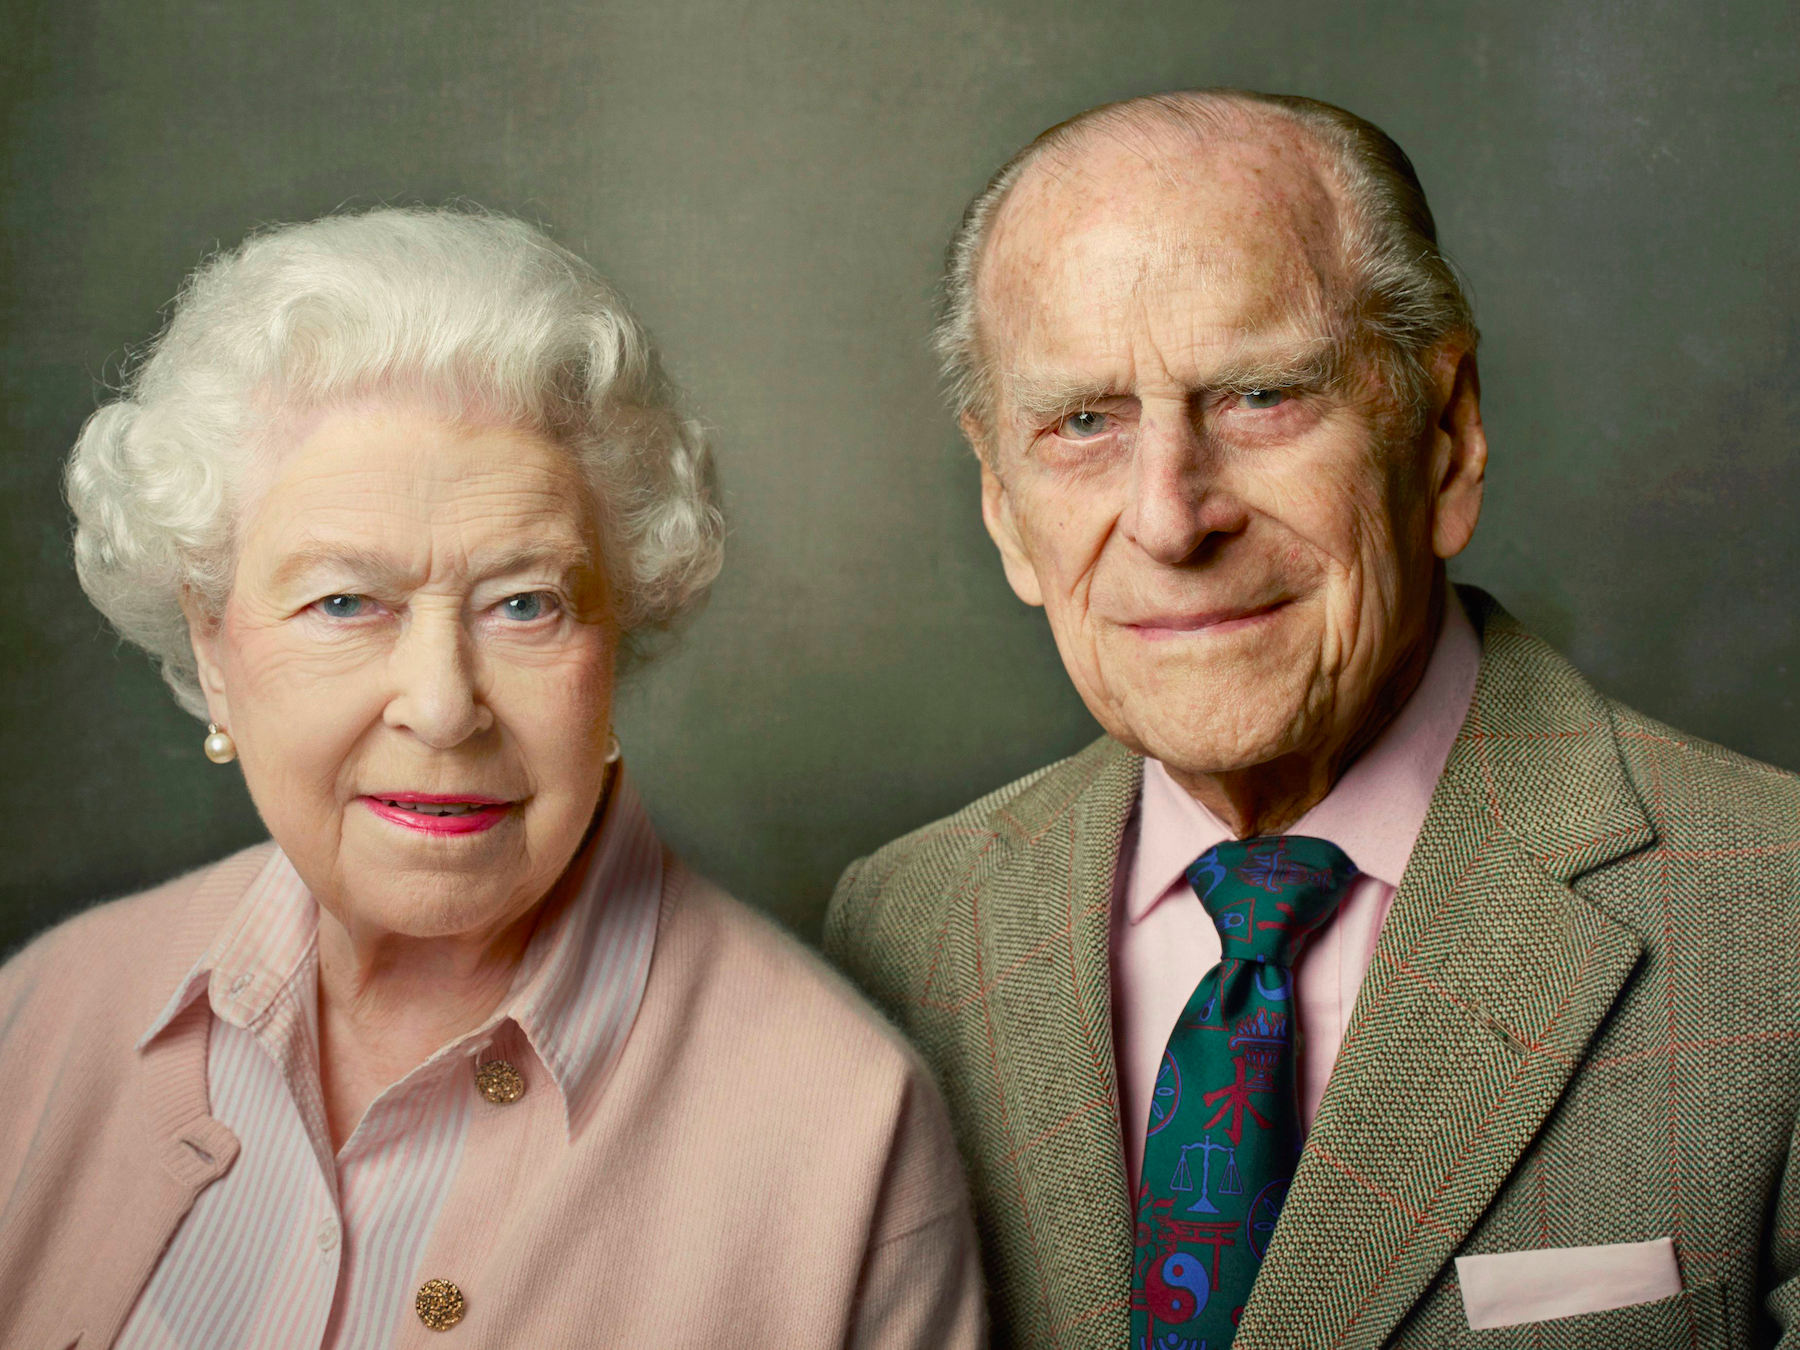 Queen Elizabeth & Prince Phillip - One of the strange royal unknown family facts is that the Queen and the Prince are actually cousins